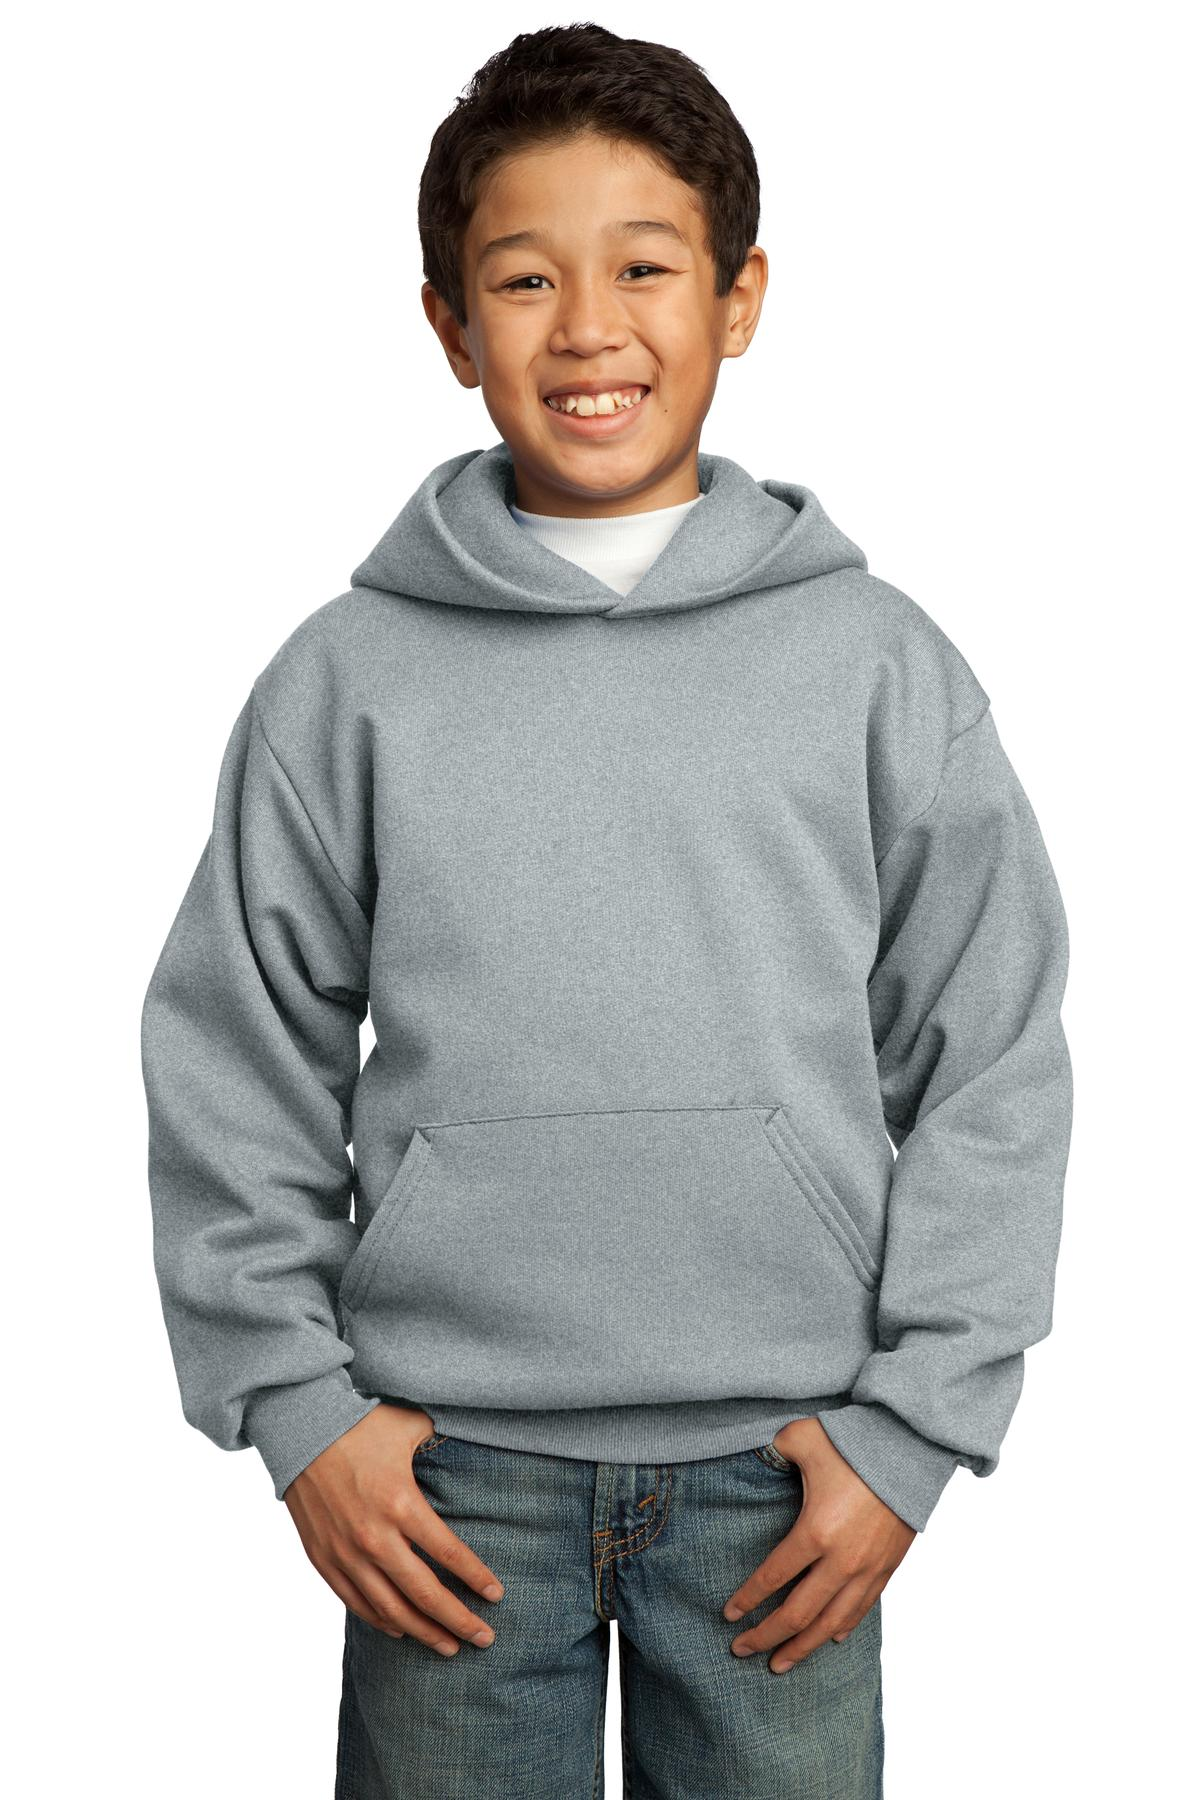 Port & Company ®  - Youth Core Fleece Pullover Hooded Sweatshirt.  PC90YH - Athletic Heather